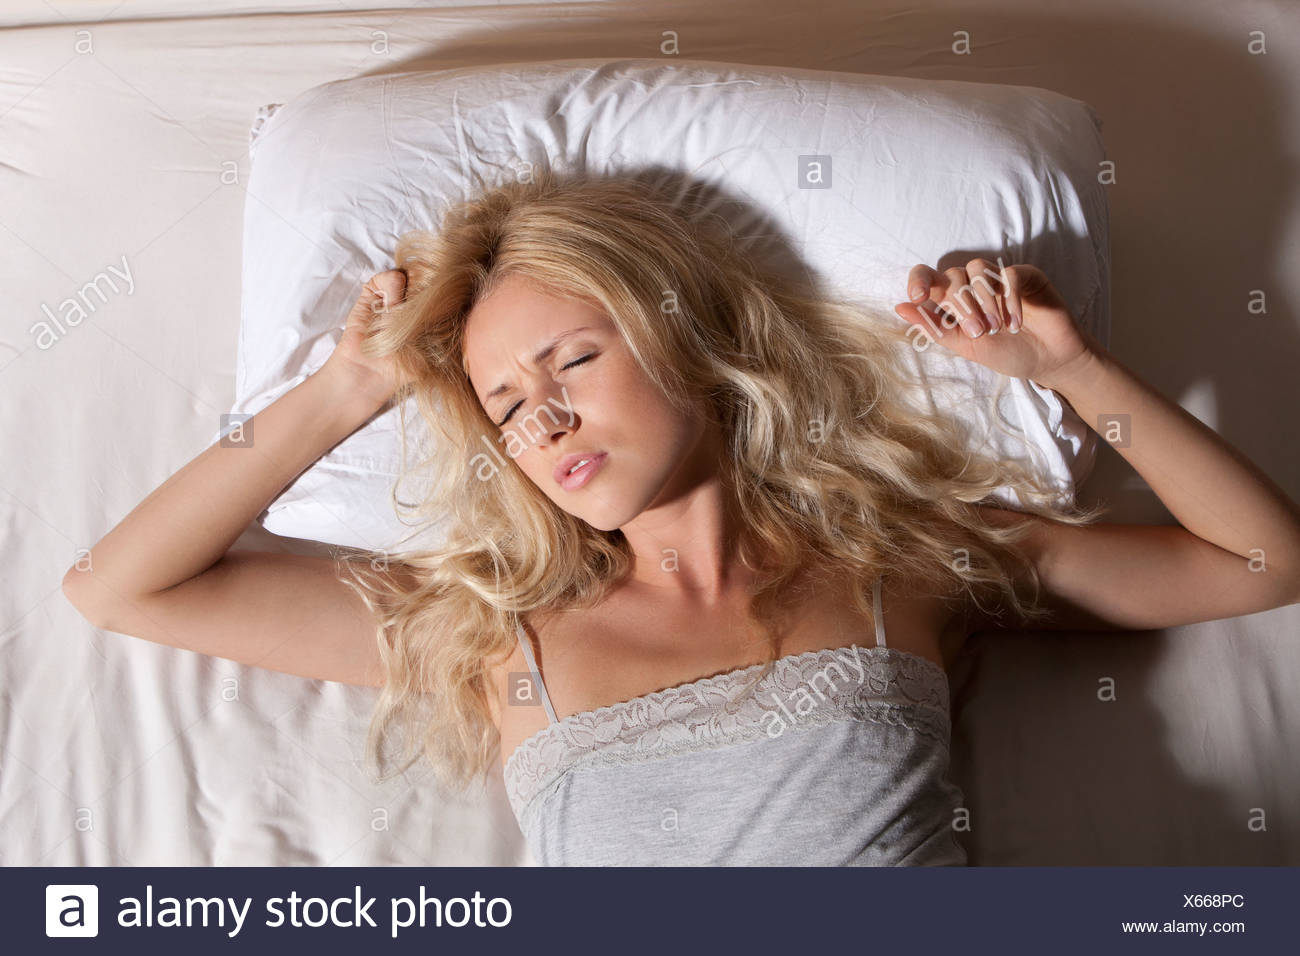 Woman sleeping fitfully in bed - Stock Image